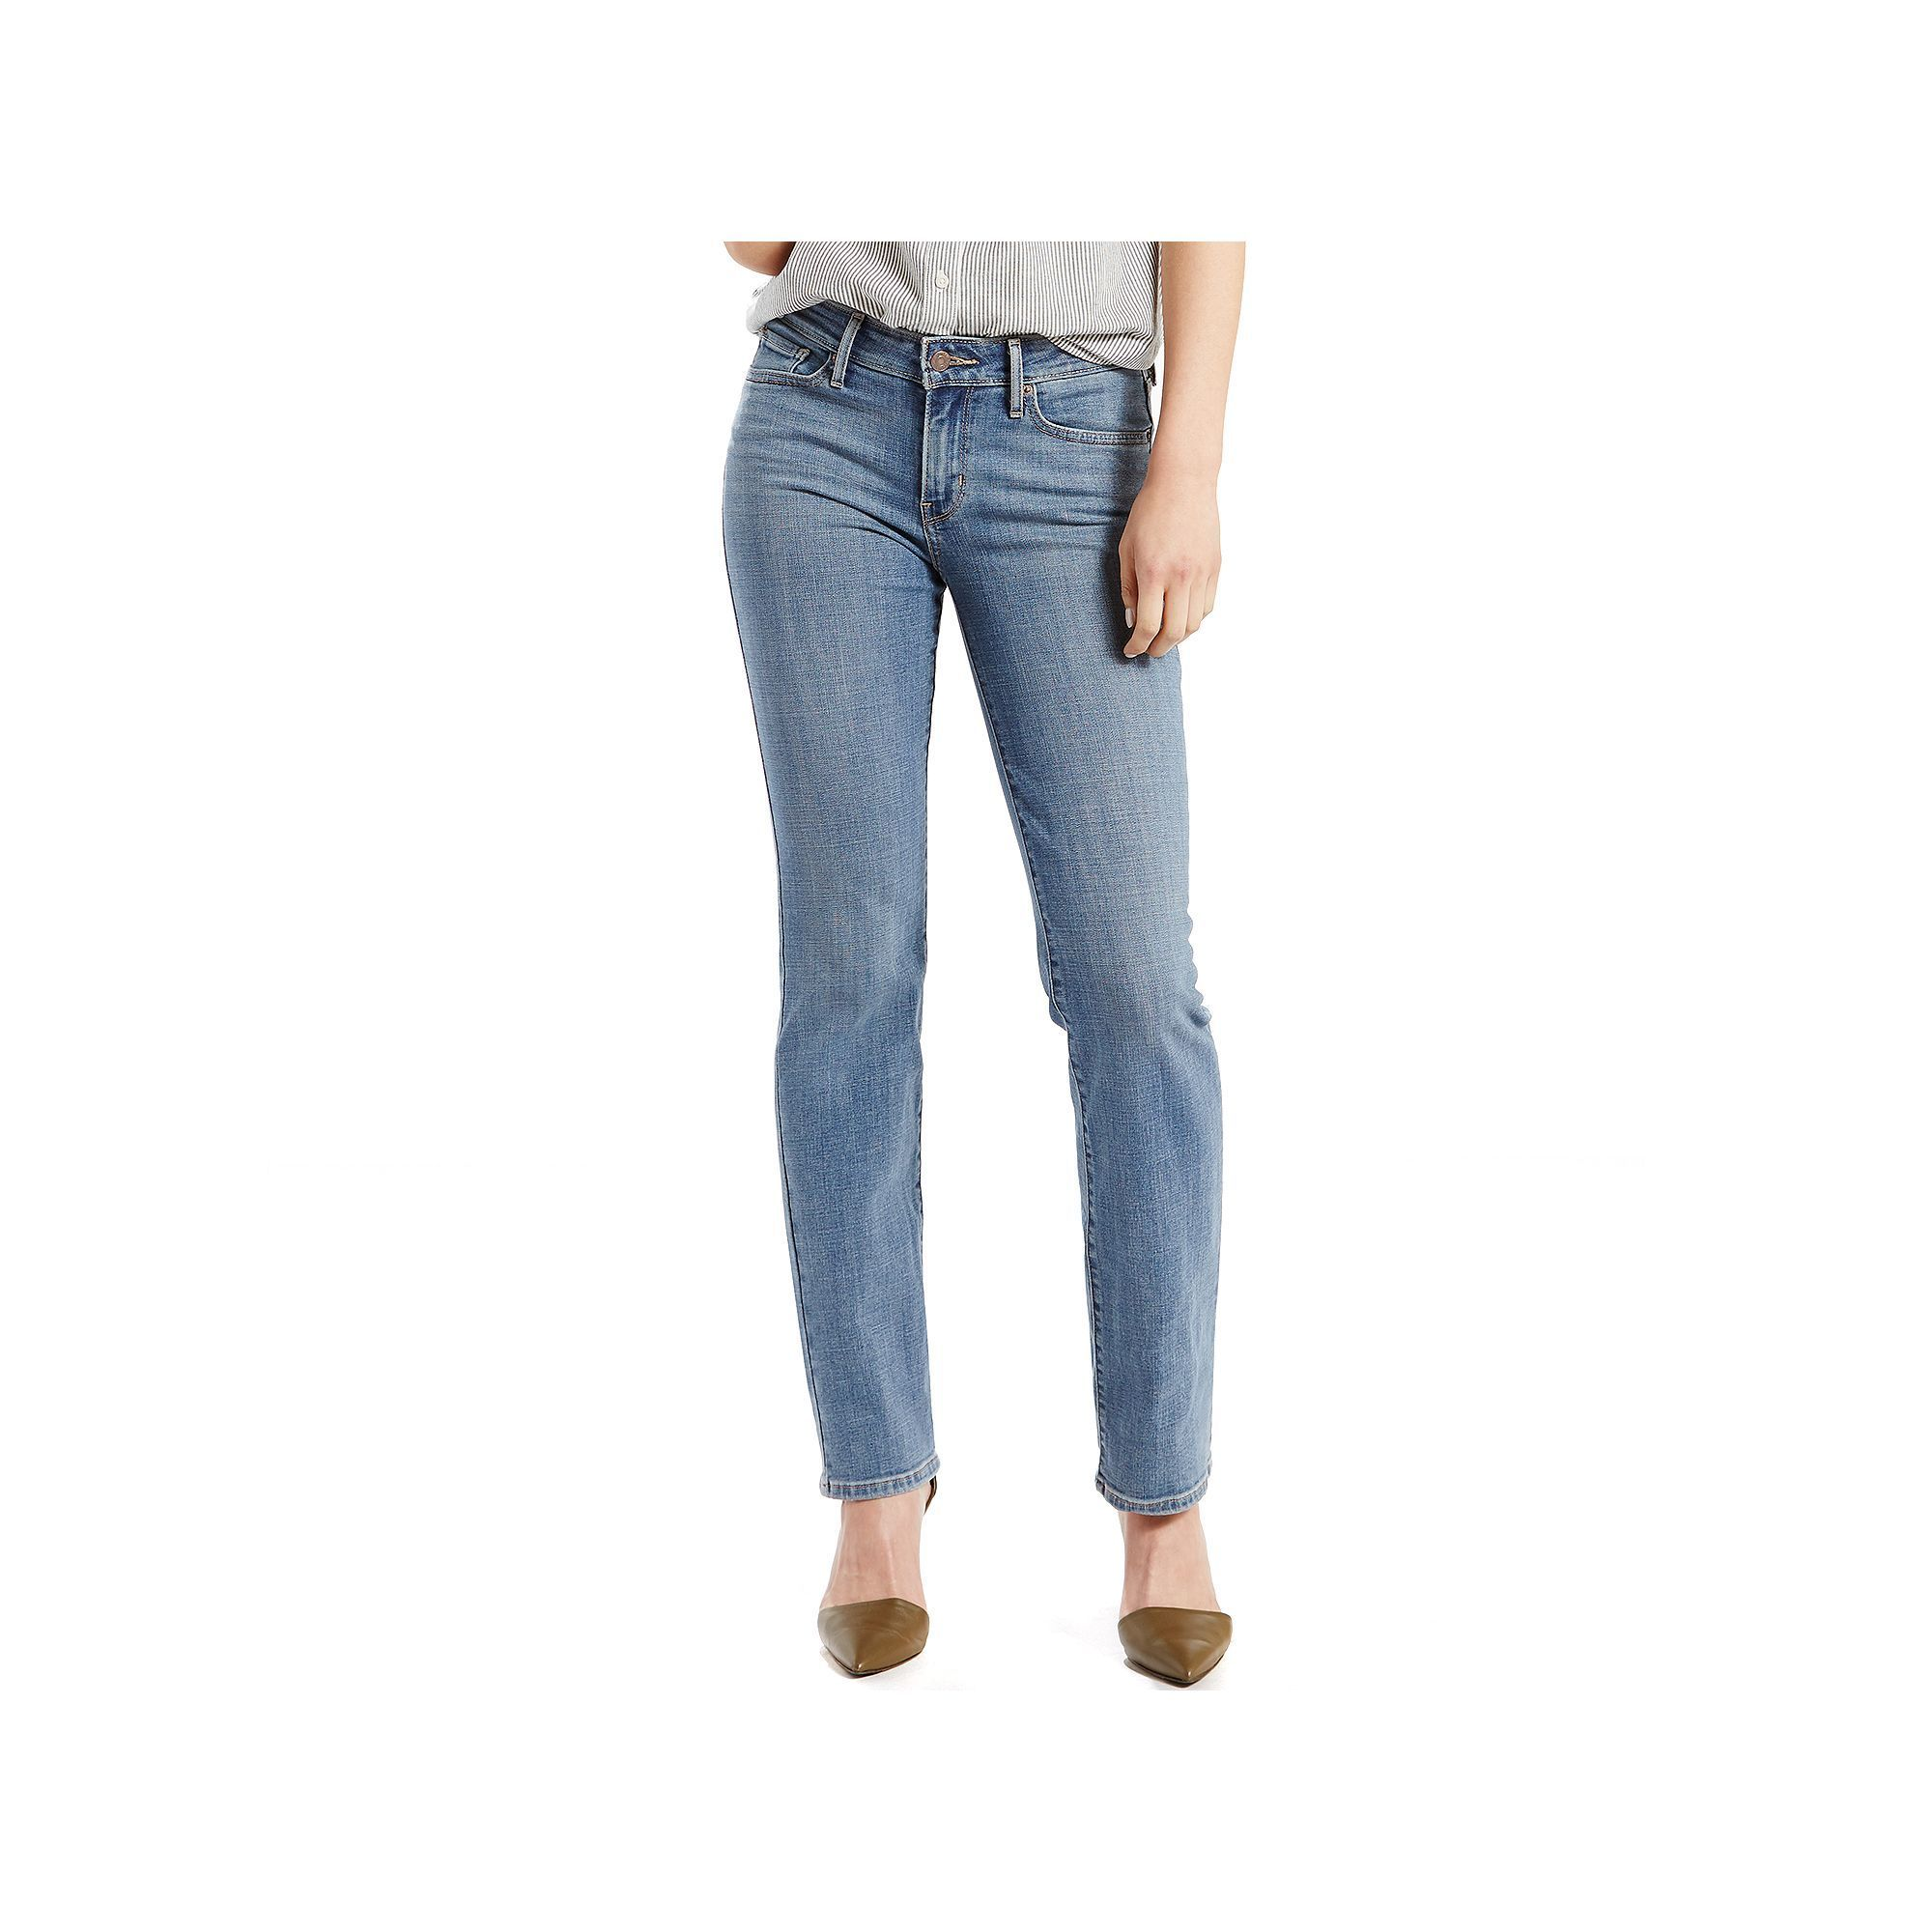 fb28ea696d0cf Women's Levi's 714 Slim Straight Leg Jeans, Size: 6/28 Short, Med Blue